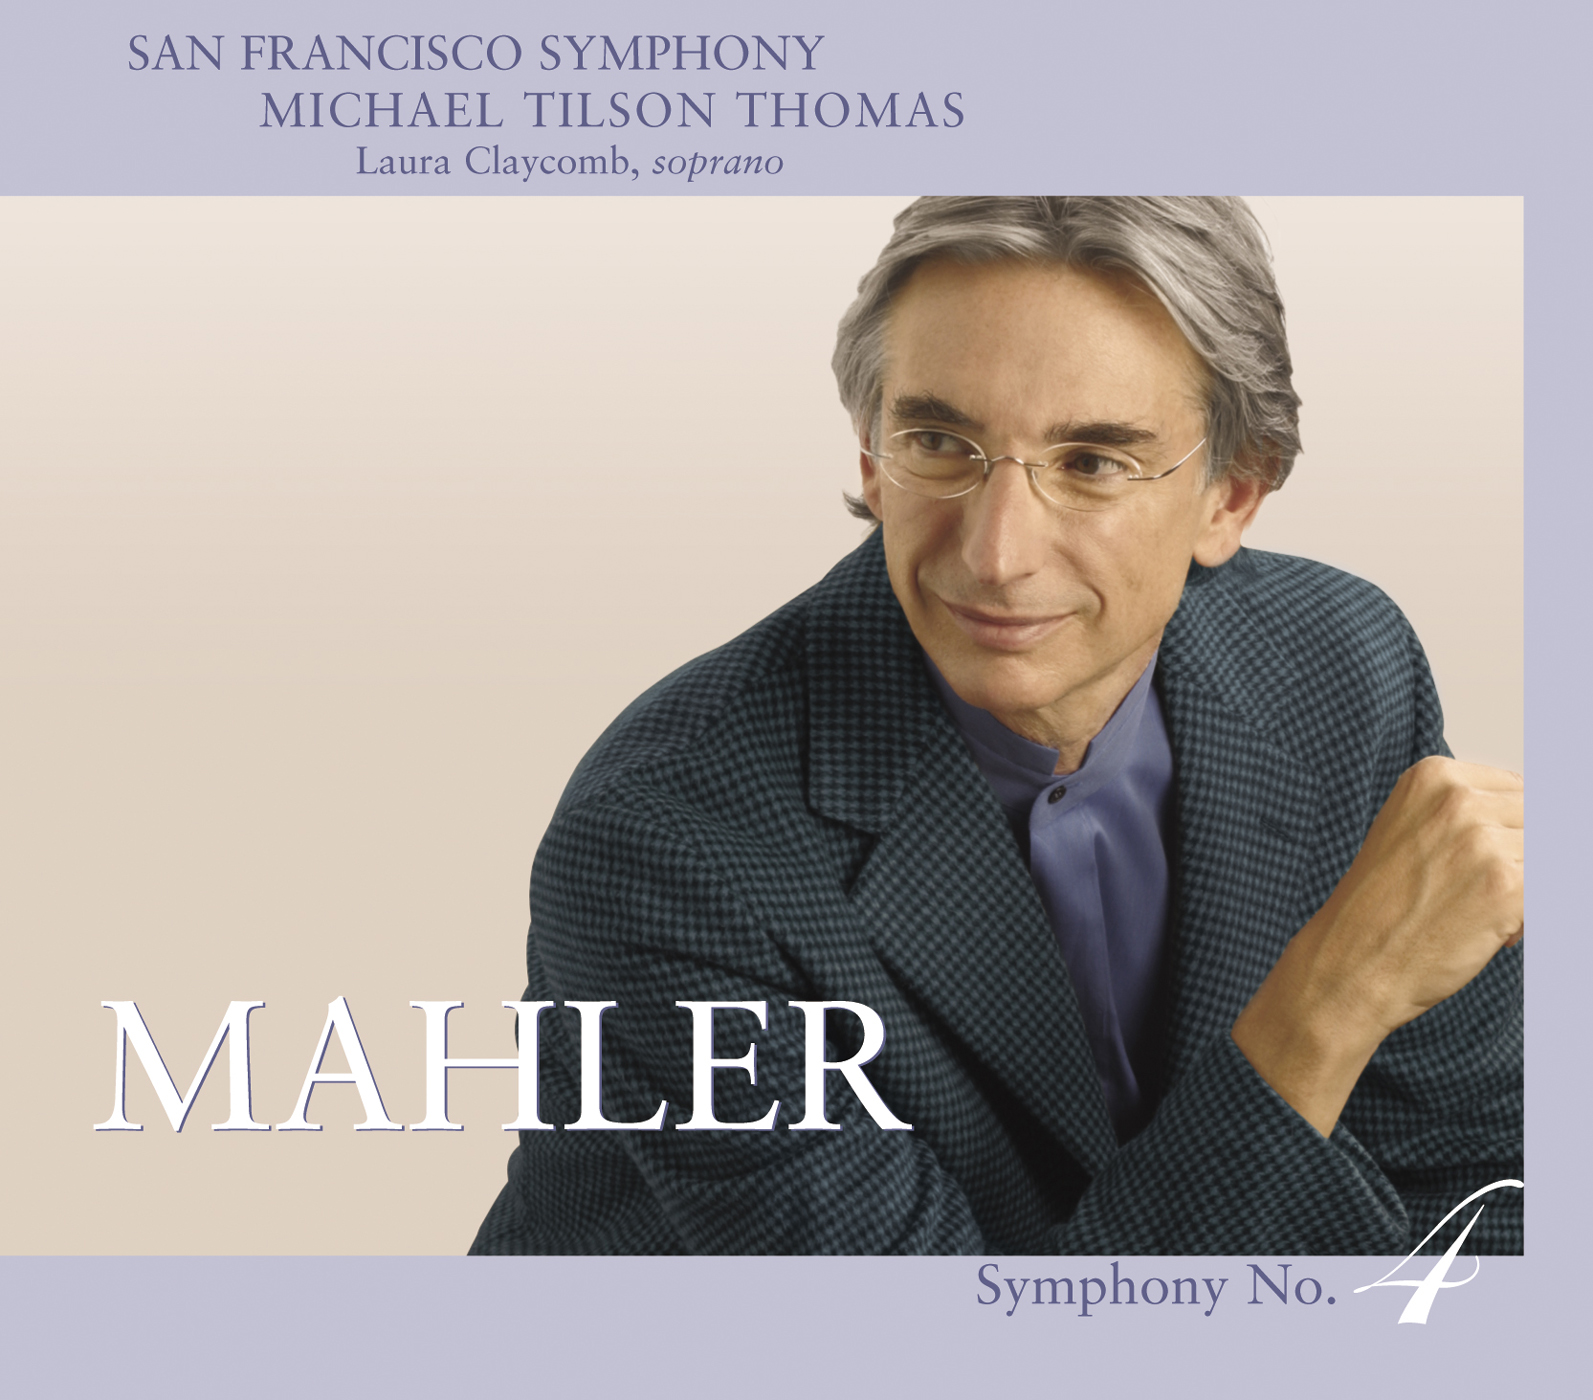 San Francisco Symphony Mahler No. 4 - Cover Image